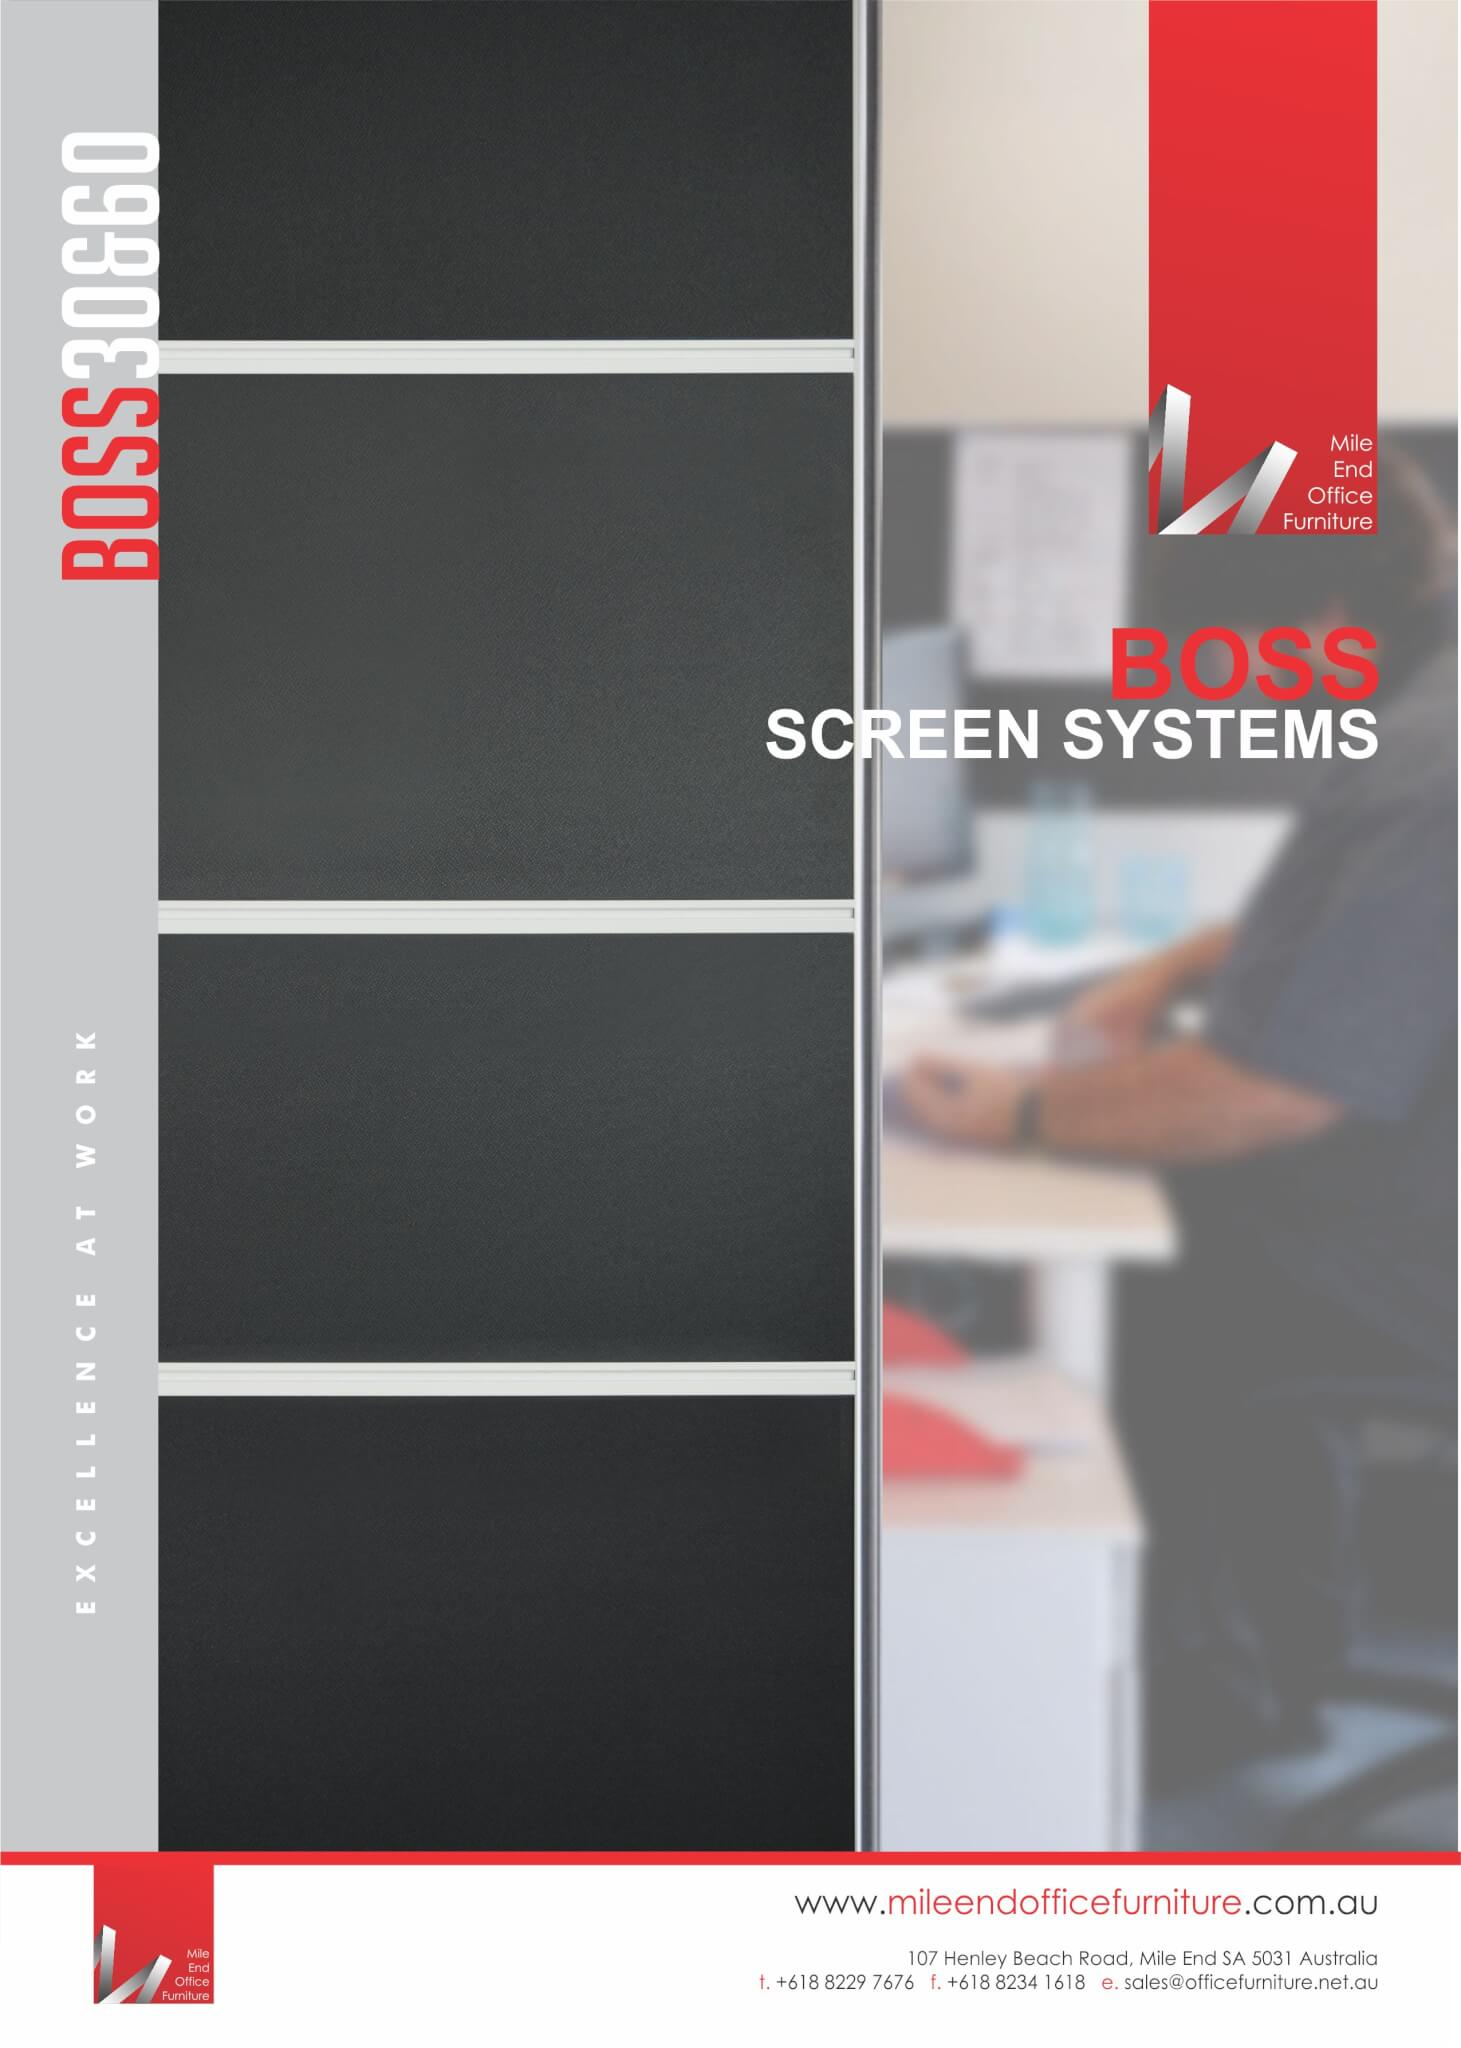 Boss Screen Systems